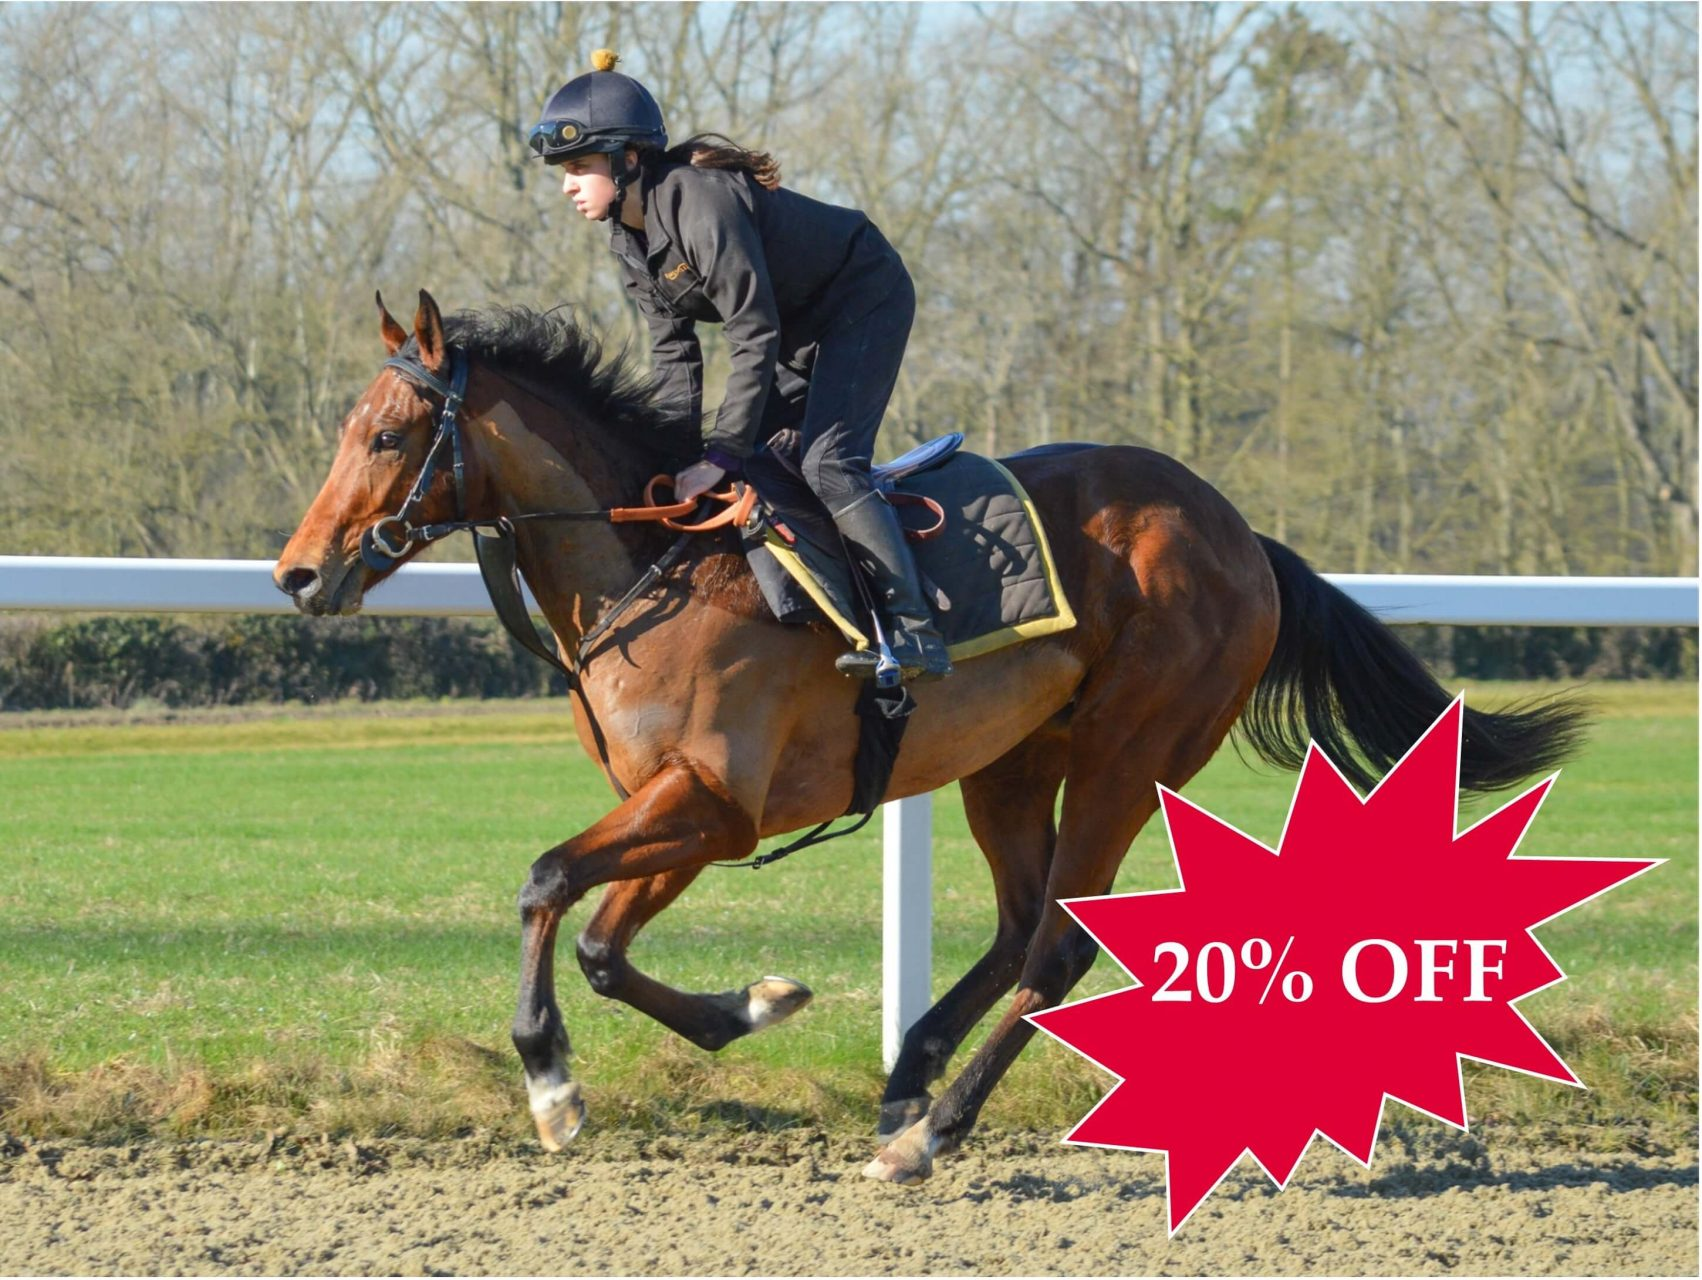 20% OFF ACCLAMATION 2YO COLT RACEHORSE SYNDICATE TRAINED BY ANDREW BALDING